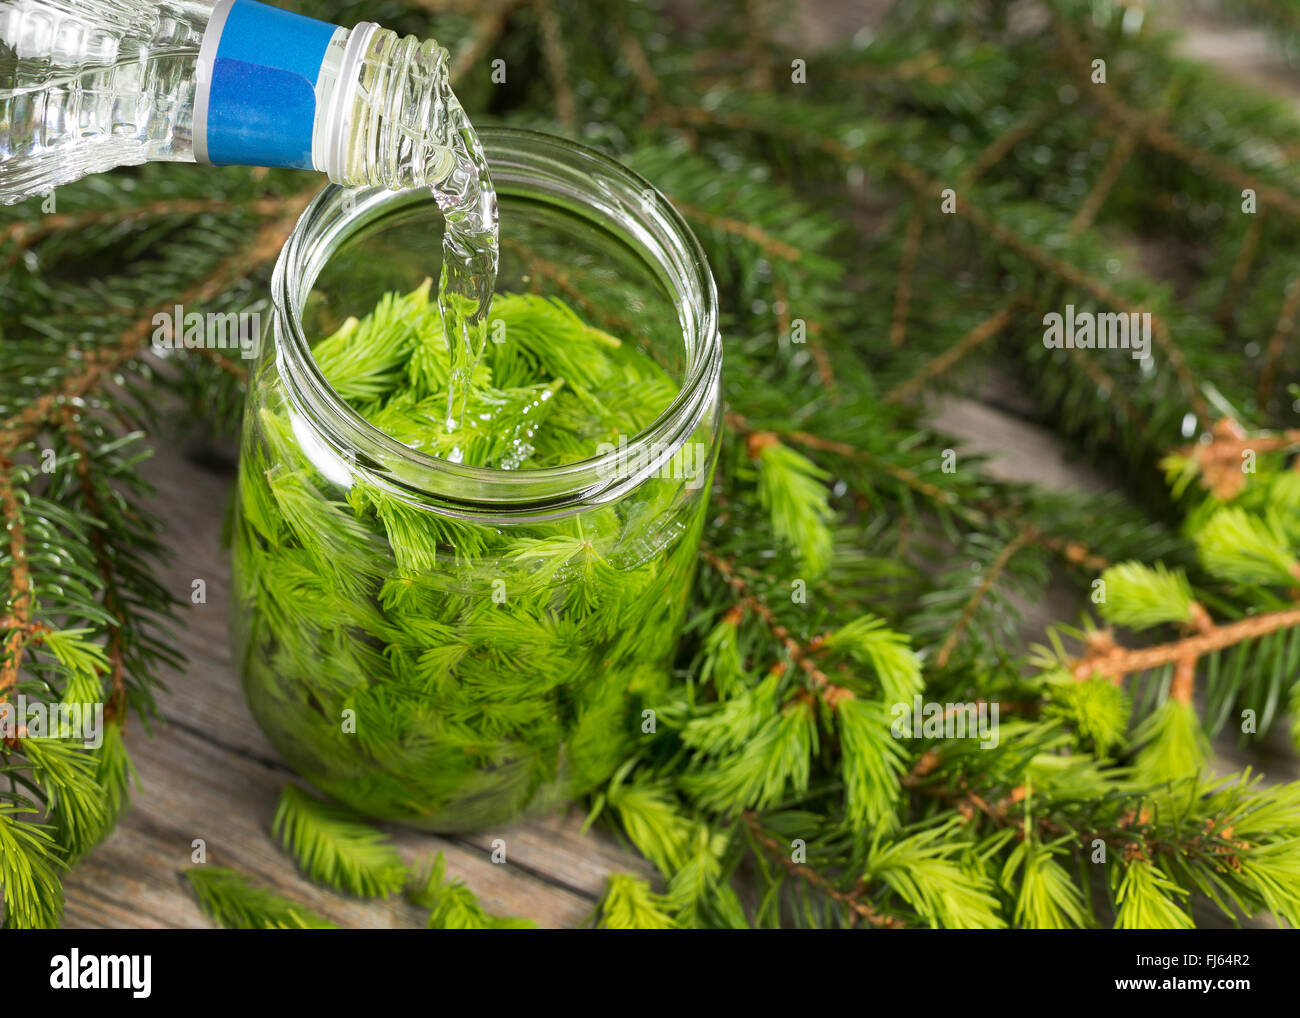 Norway spruce (Picea abies), jung sproots in a preserving jar, Germany - Stock Image